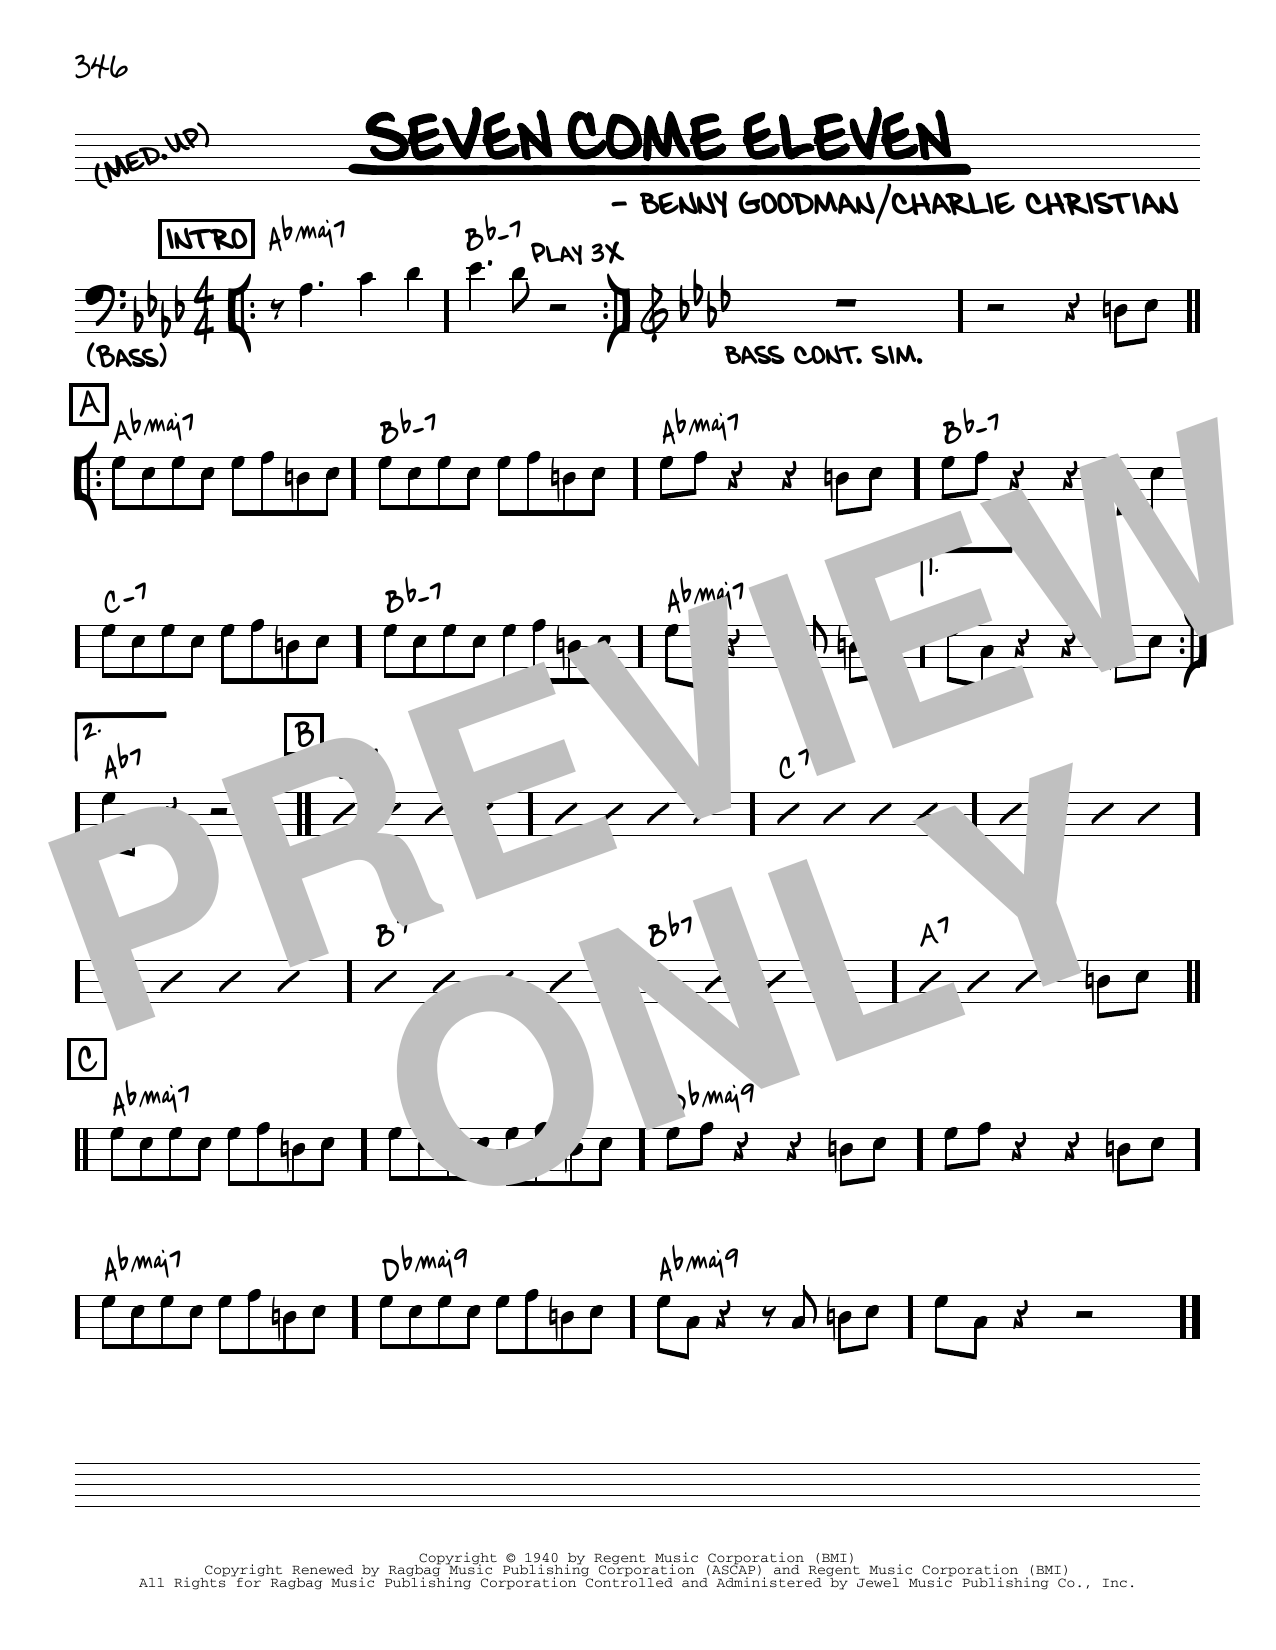 Benny Goodman Seven Come Eleven [Reharmonized version] (arr. Jack Grassel) sheet music notes printable PDF score